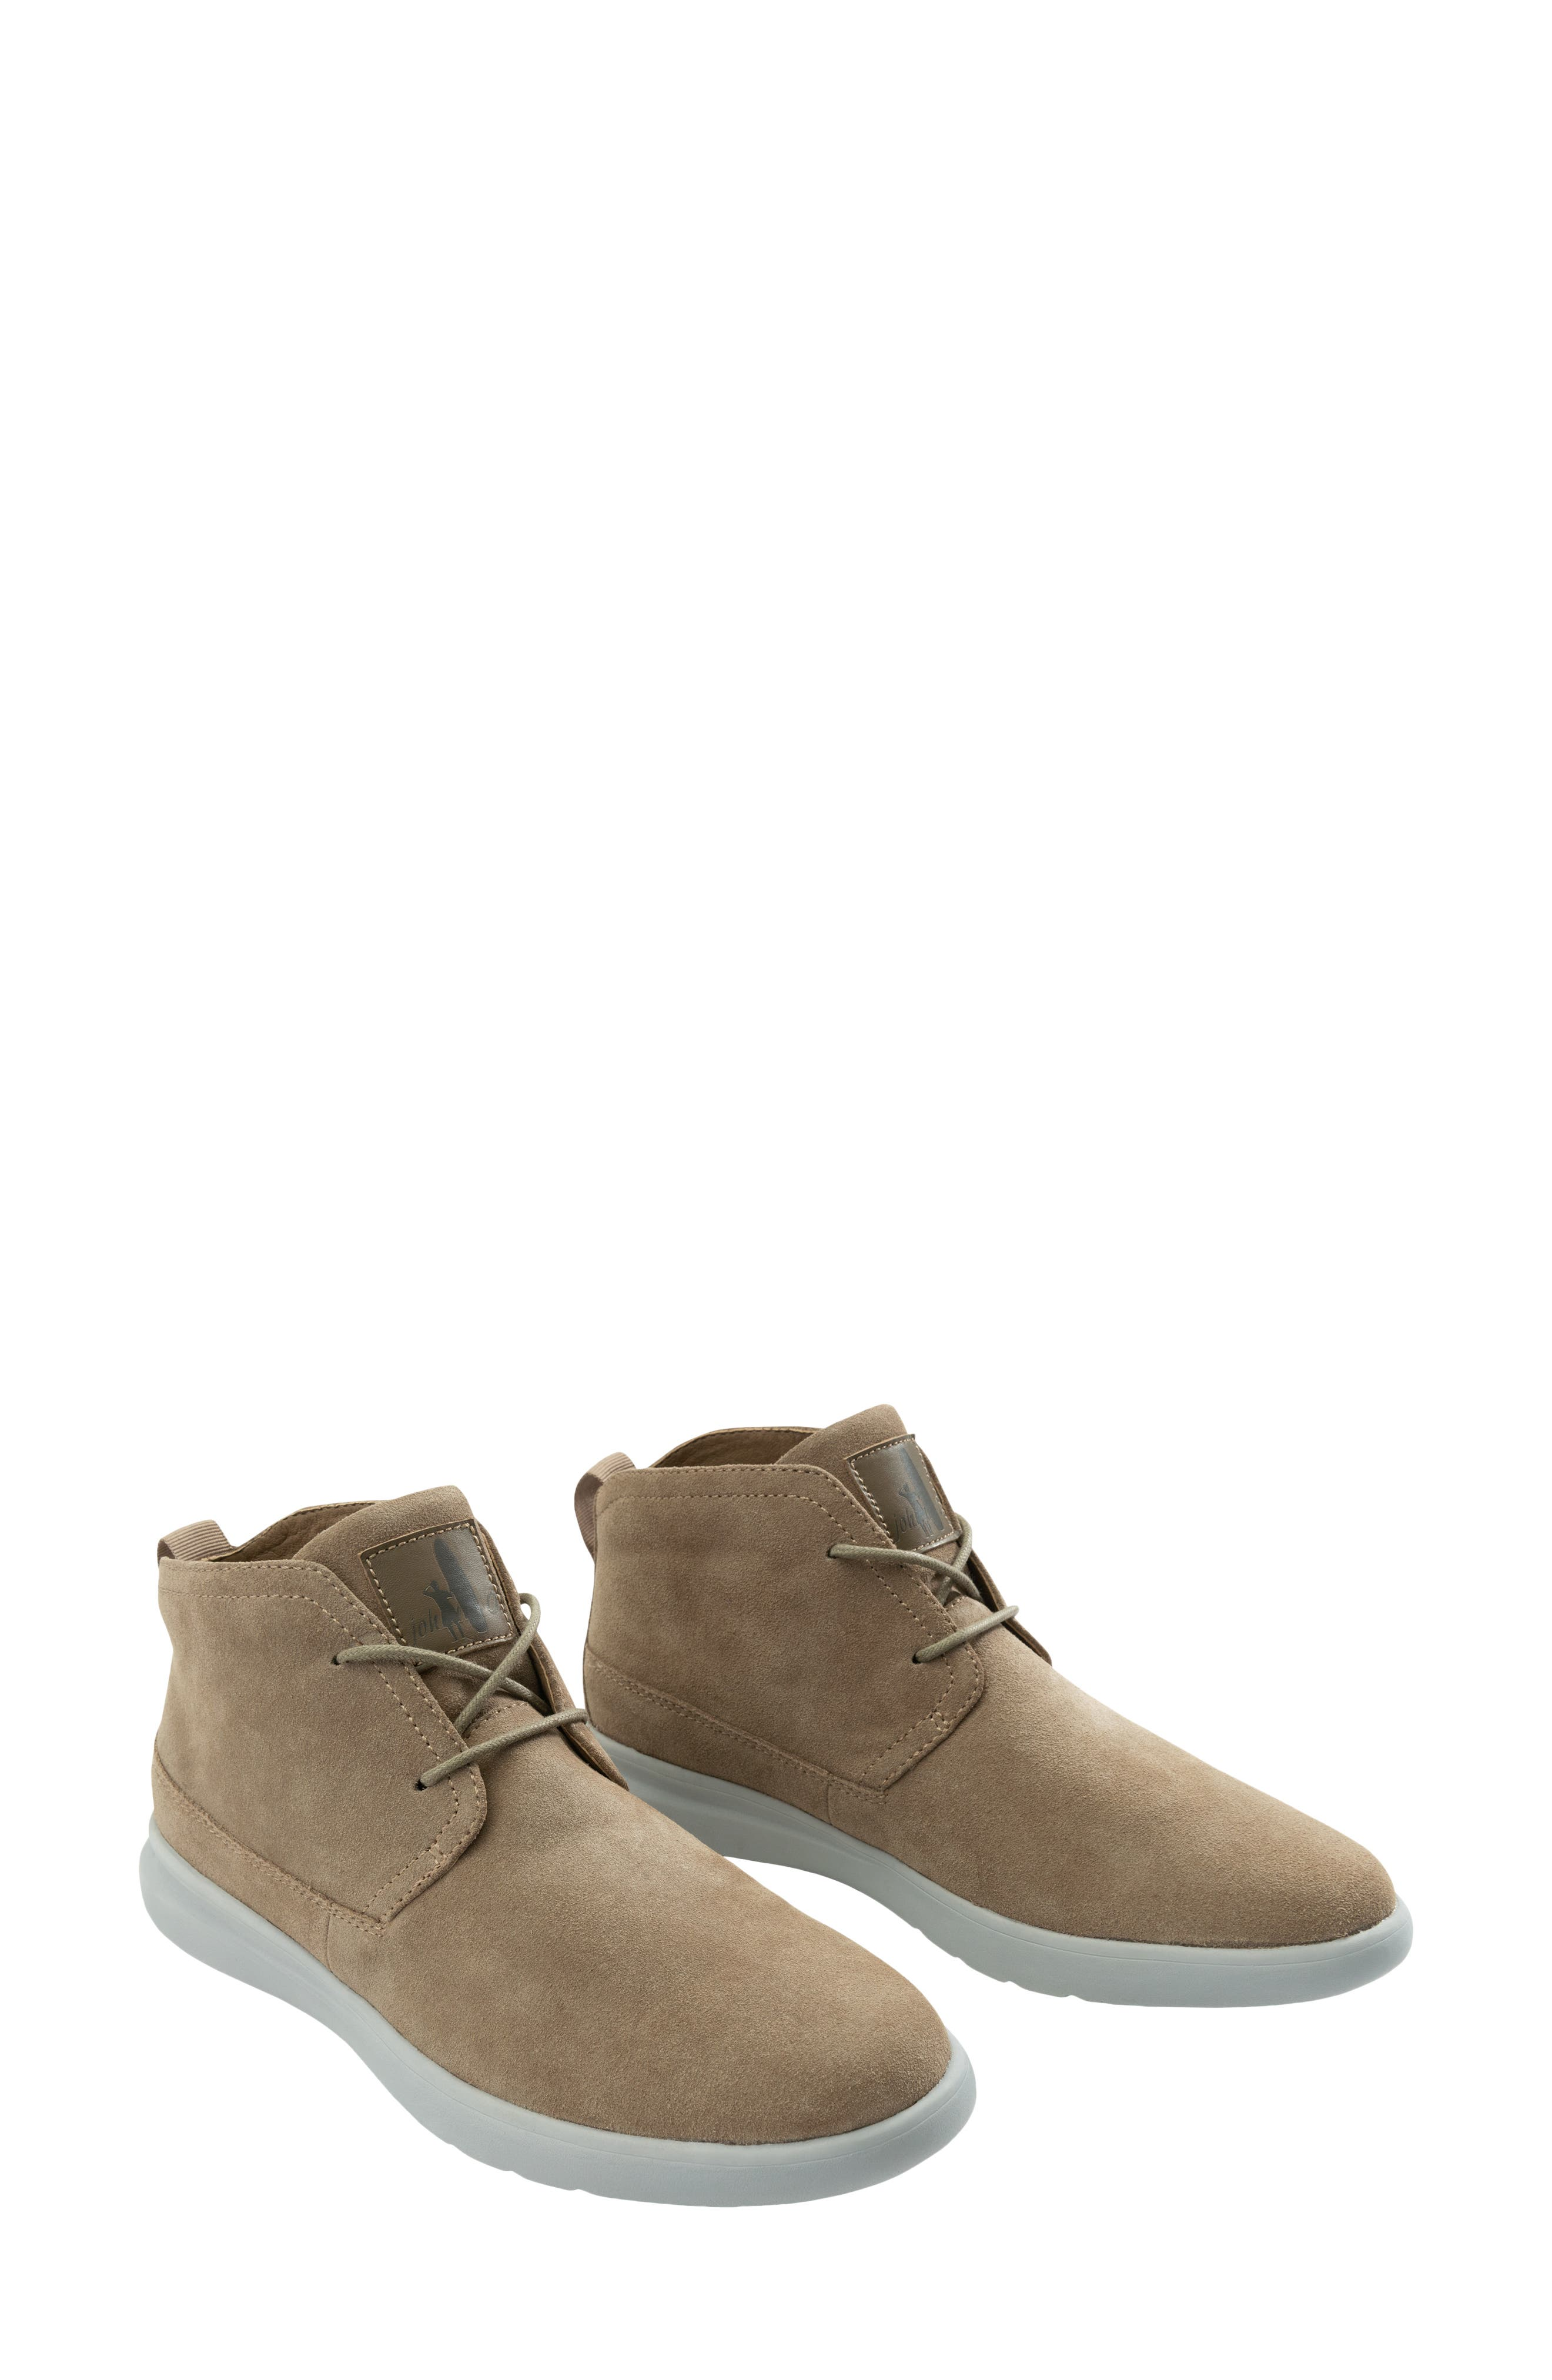 The Chill Water Resistant Chukka Boot